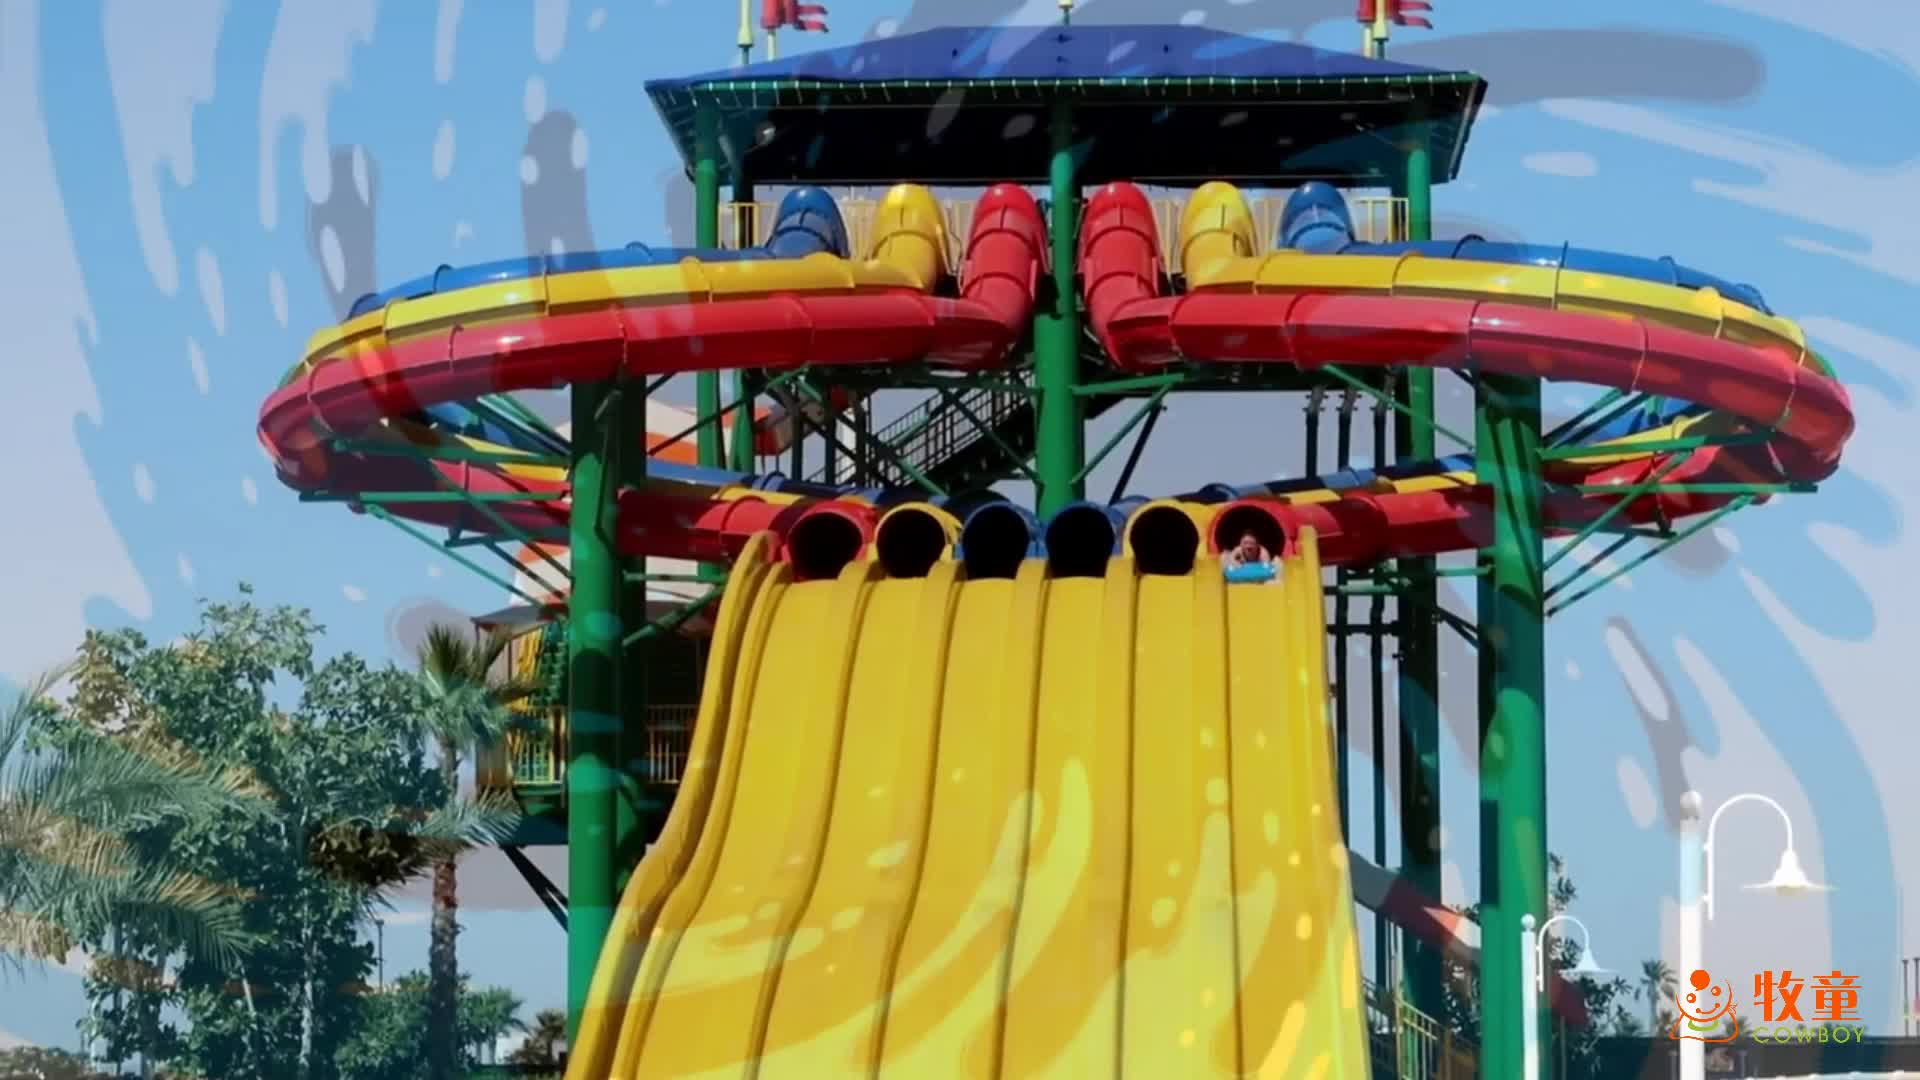 Six lane colorful used swimming pools long rainbow water - Used swimming pool slides for sale ...